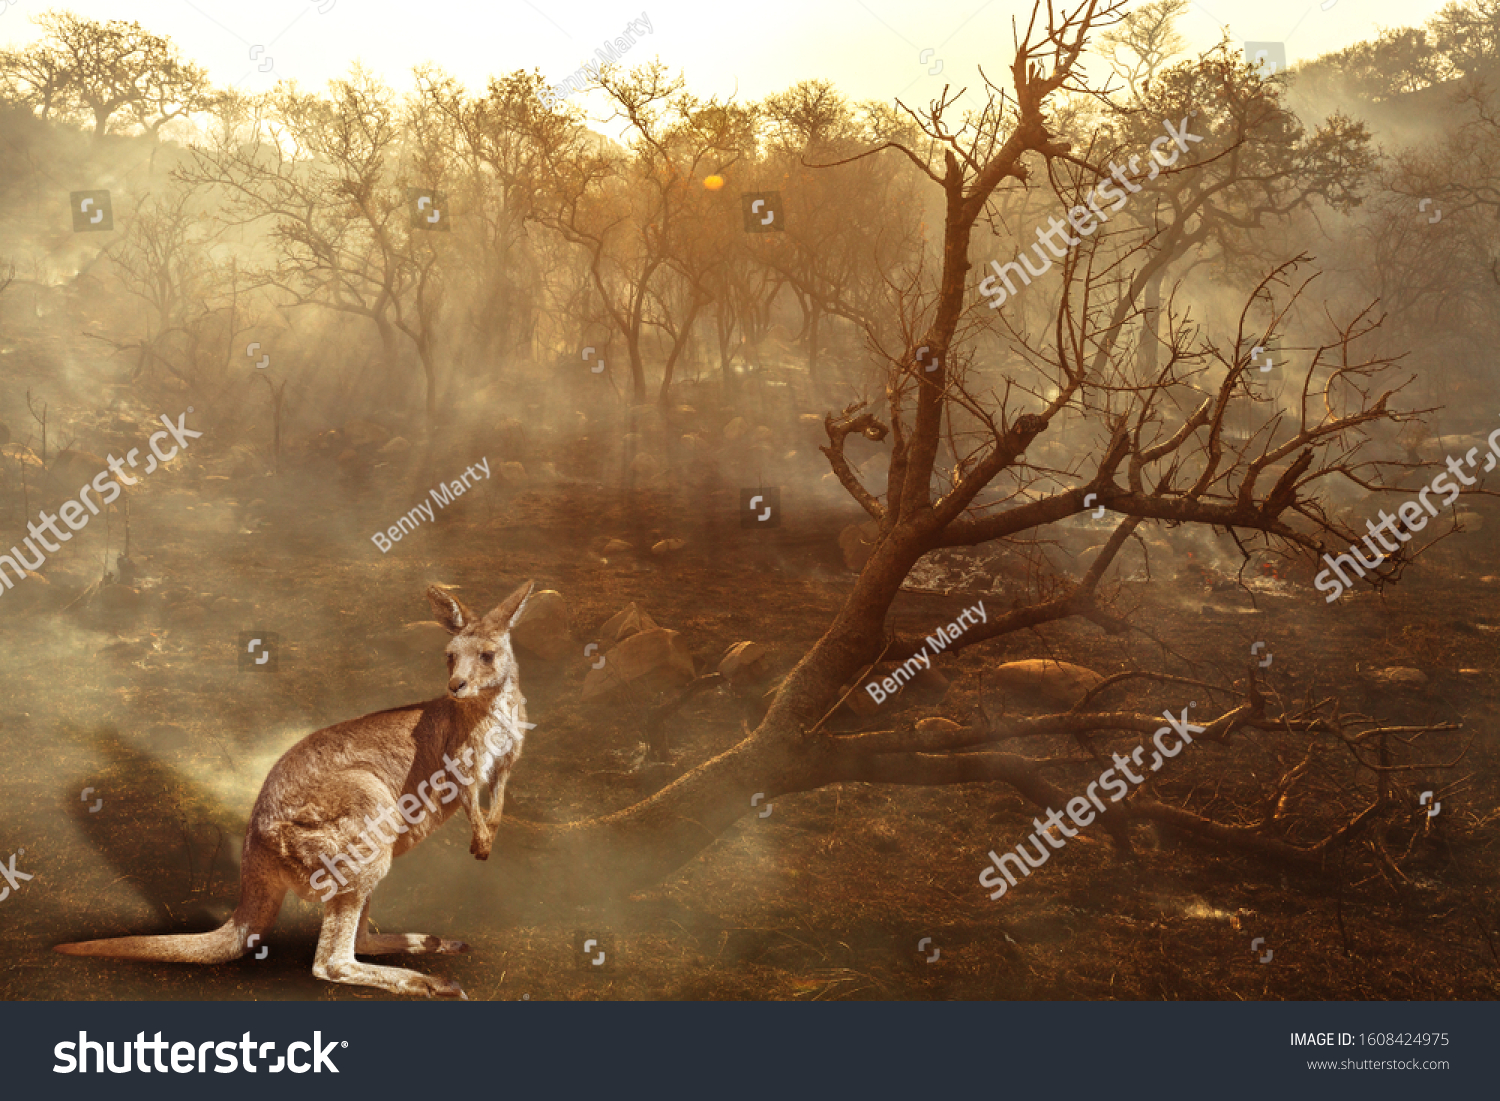 Composition about Australian wildlife in bushfires of Australia in 2020. Kangaroo with fire on background. January 2020 fire affecting Australia is considered the most devastating and deadly ever seen #1608424975